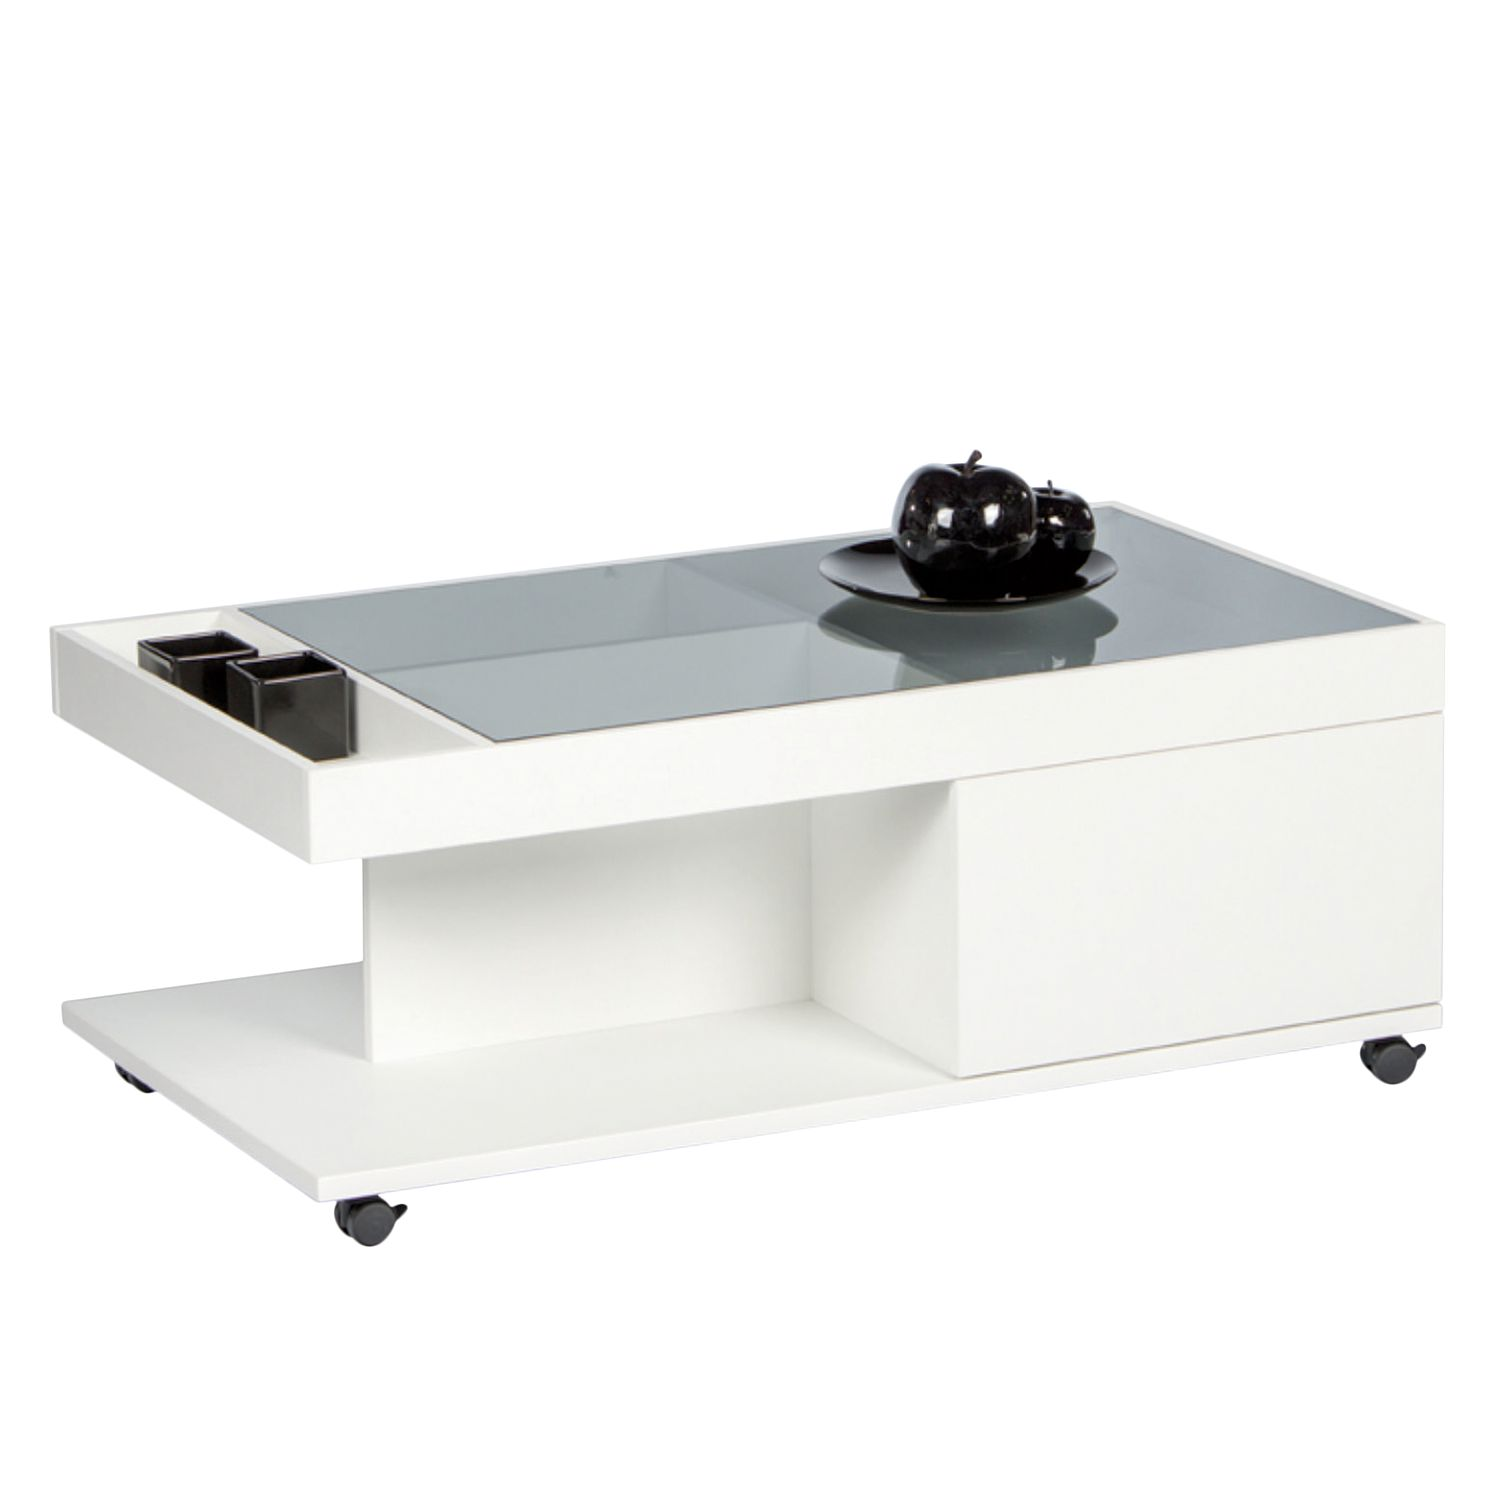 Table basse Brocket